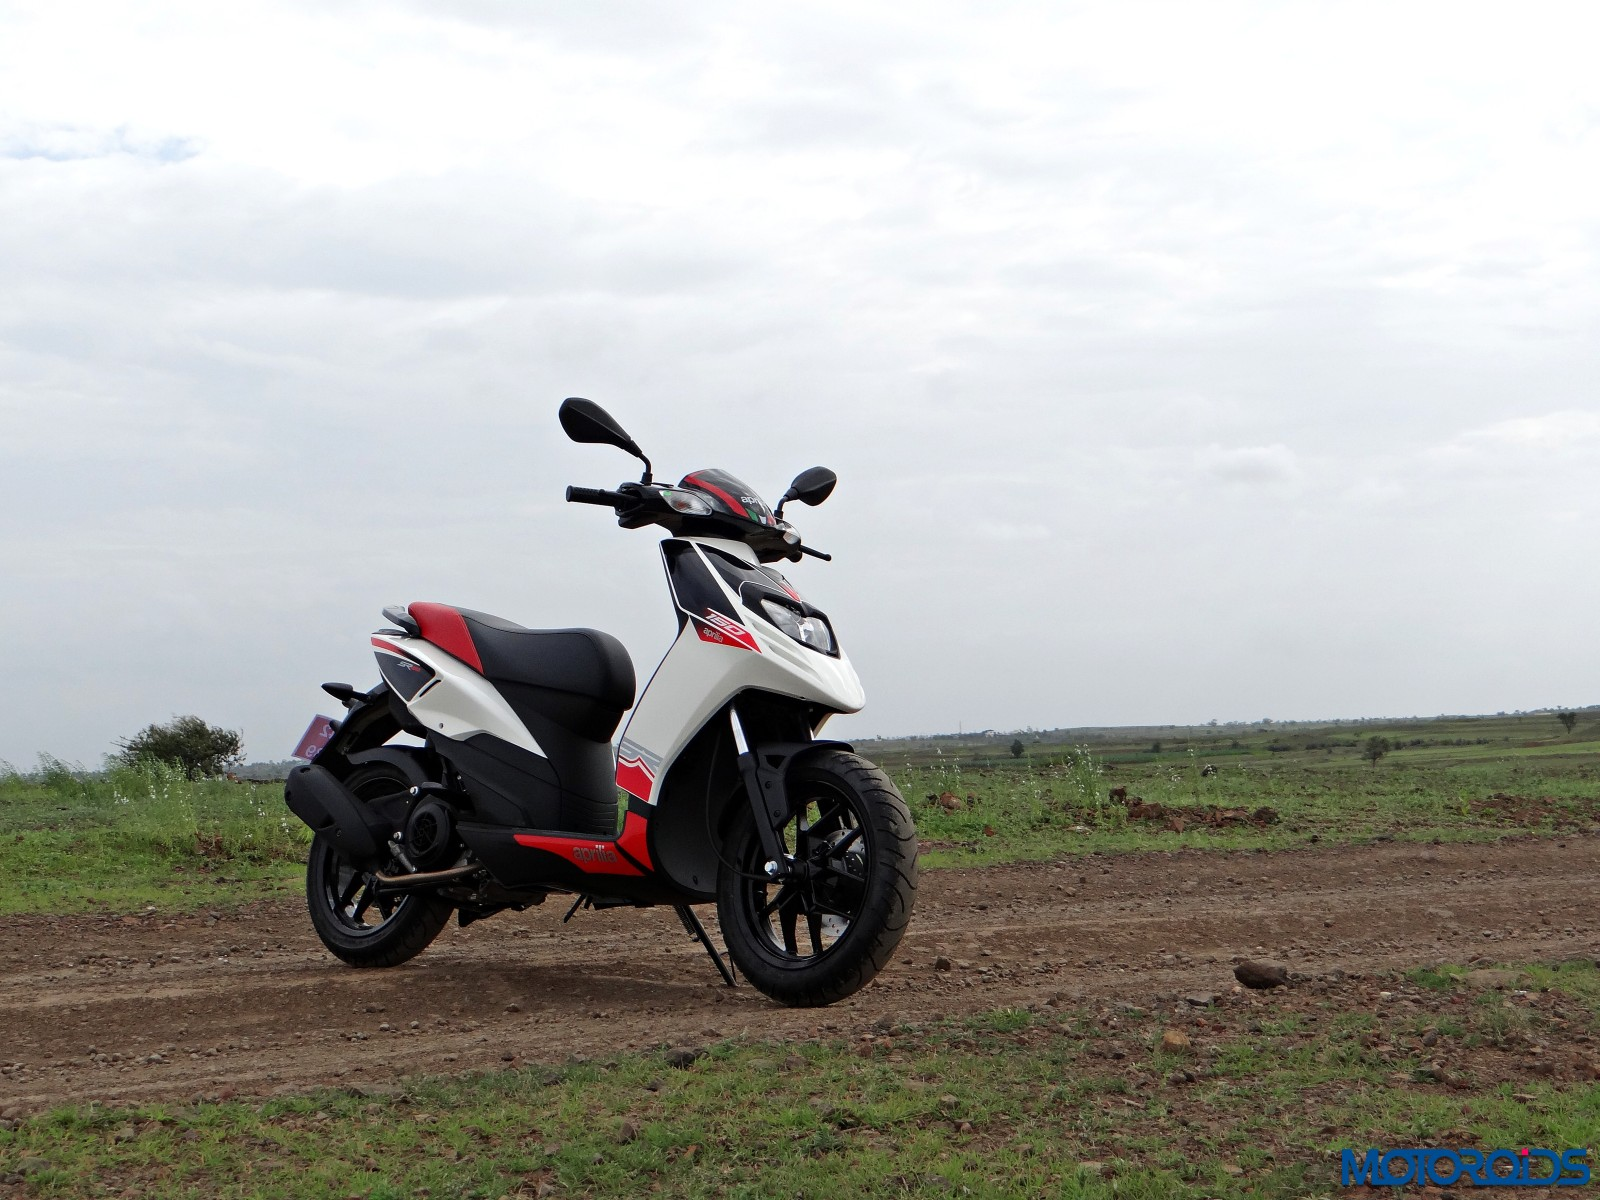 Aprilia SR 150 Review - Still Shots (12)